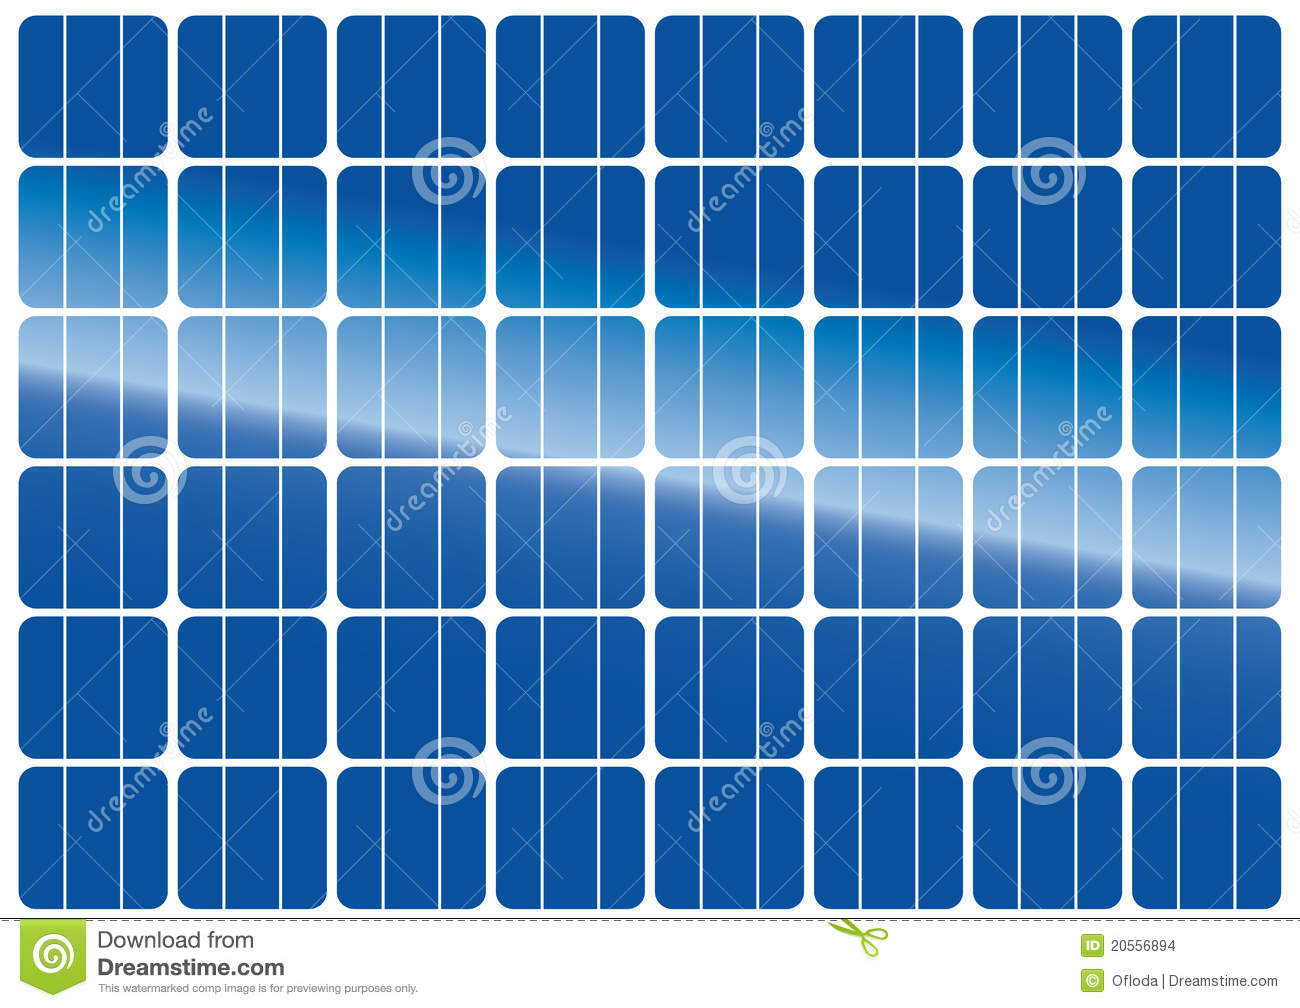 Solar Panel Texture Stock Images - Image: 20556894